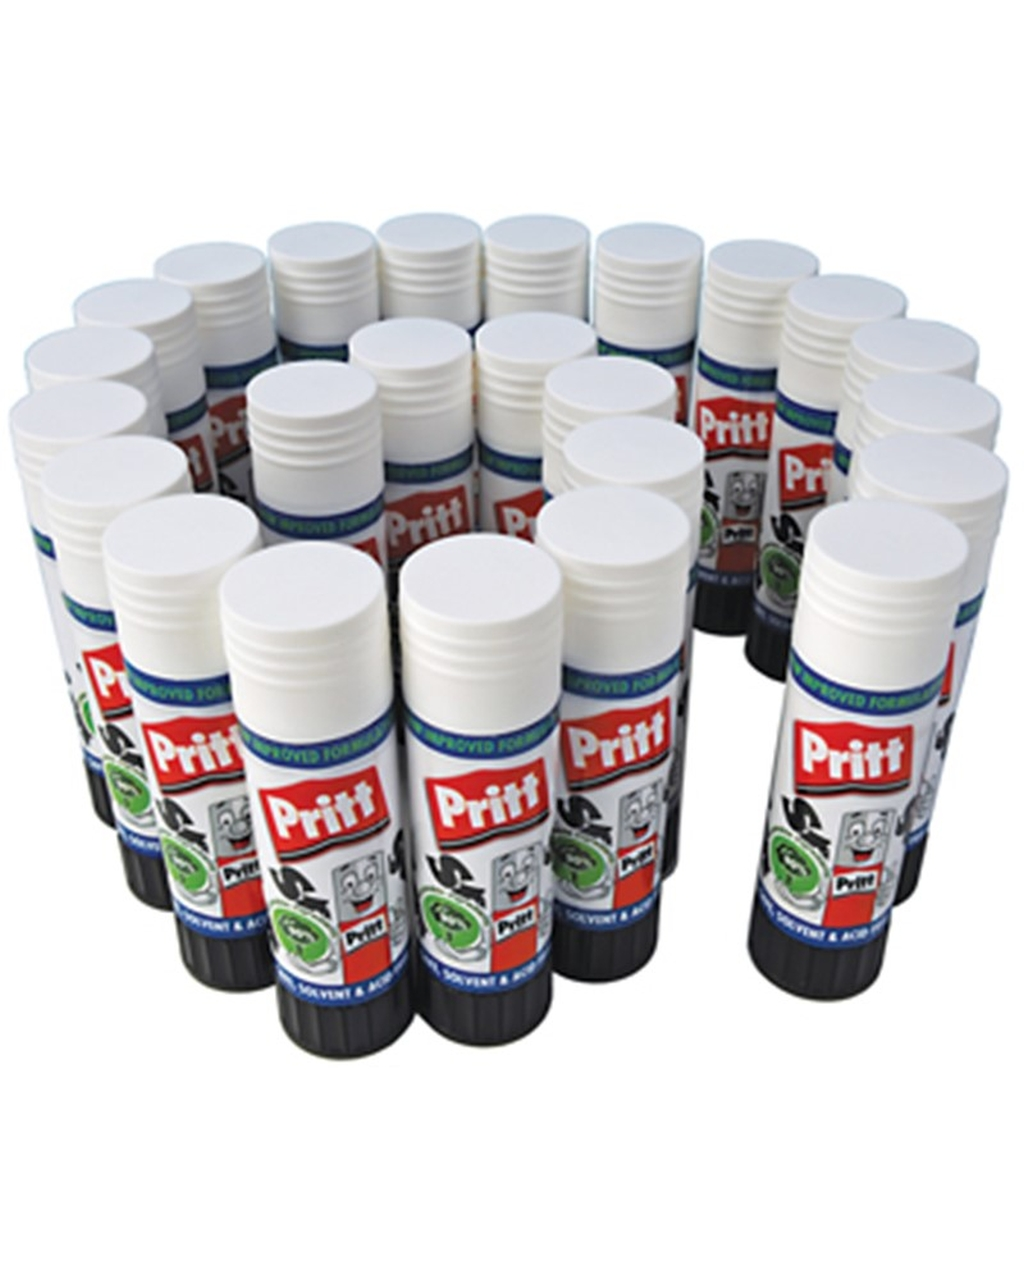 22g Pritt Sticks Value Pack